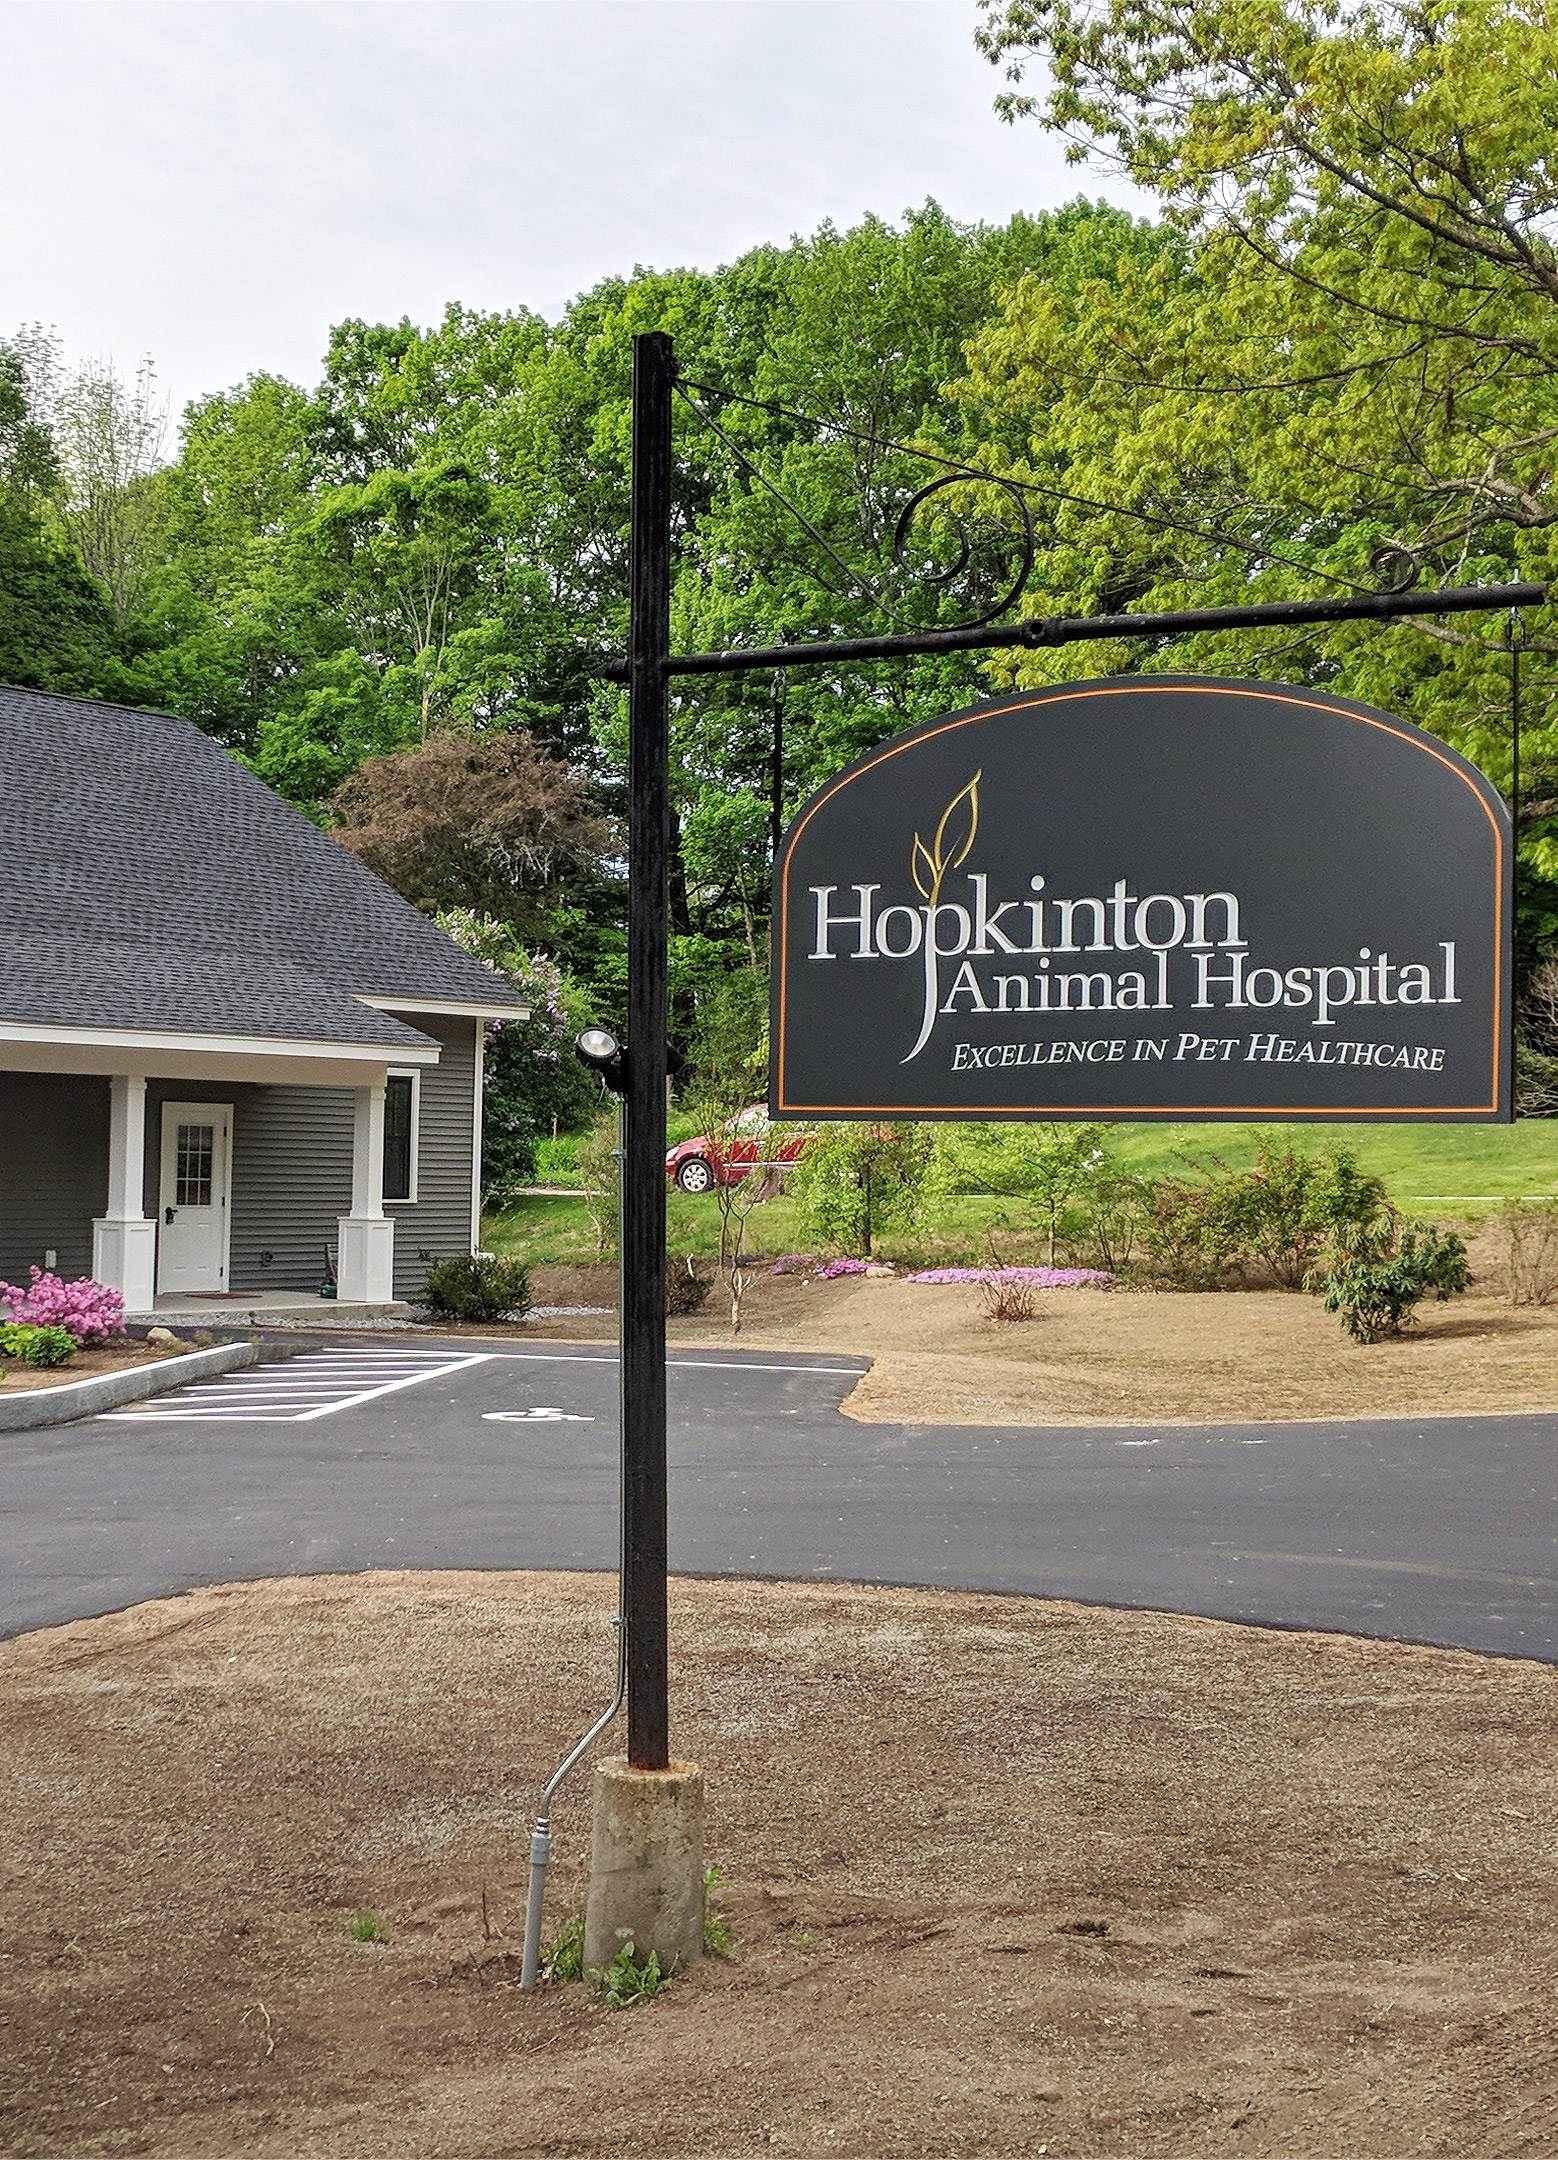 Hopkinton Animal Hospital is a veterinary hospital in Hopkinton, NH, that treats dogs and cats and small exotic pets such as birds, ferrets, rabbits, and reptiles.